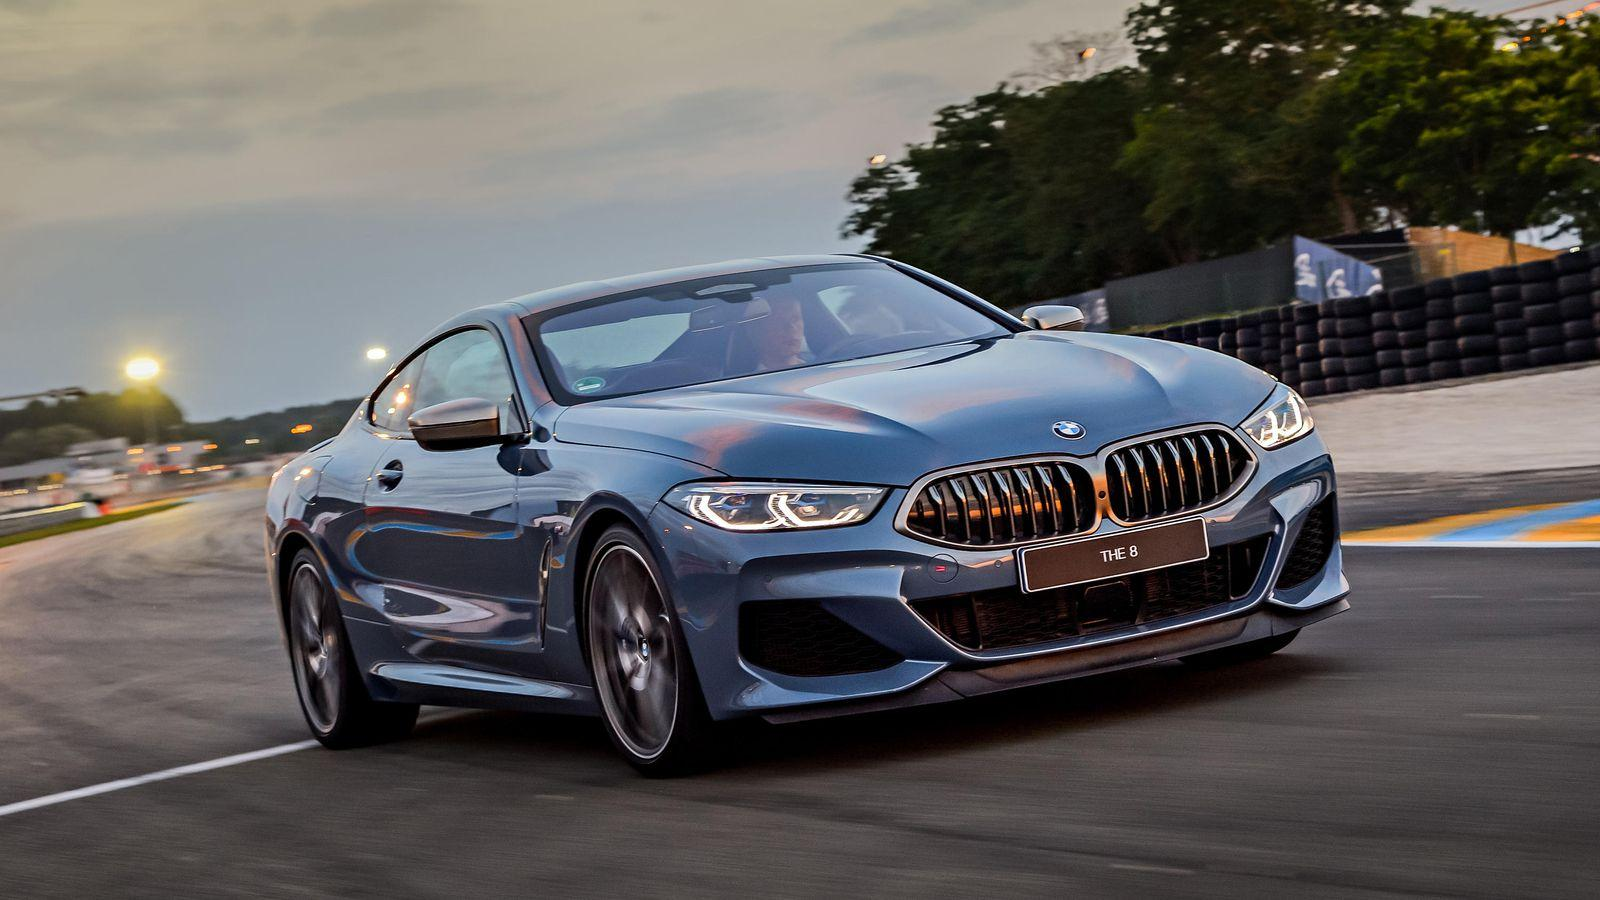 BMW M850i XDrive Gran Coupe Wallpapers - Wallpaper Cave